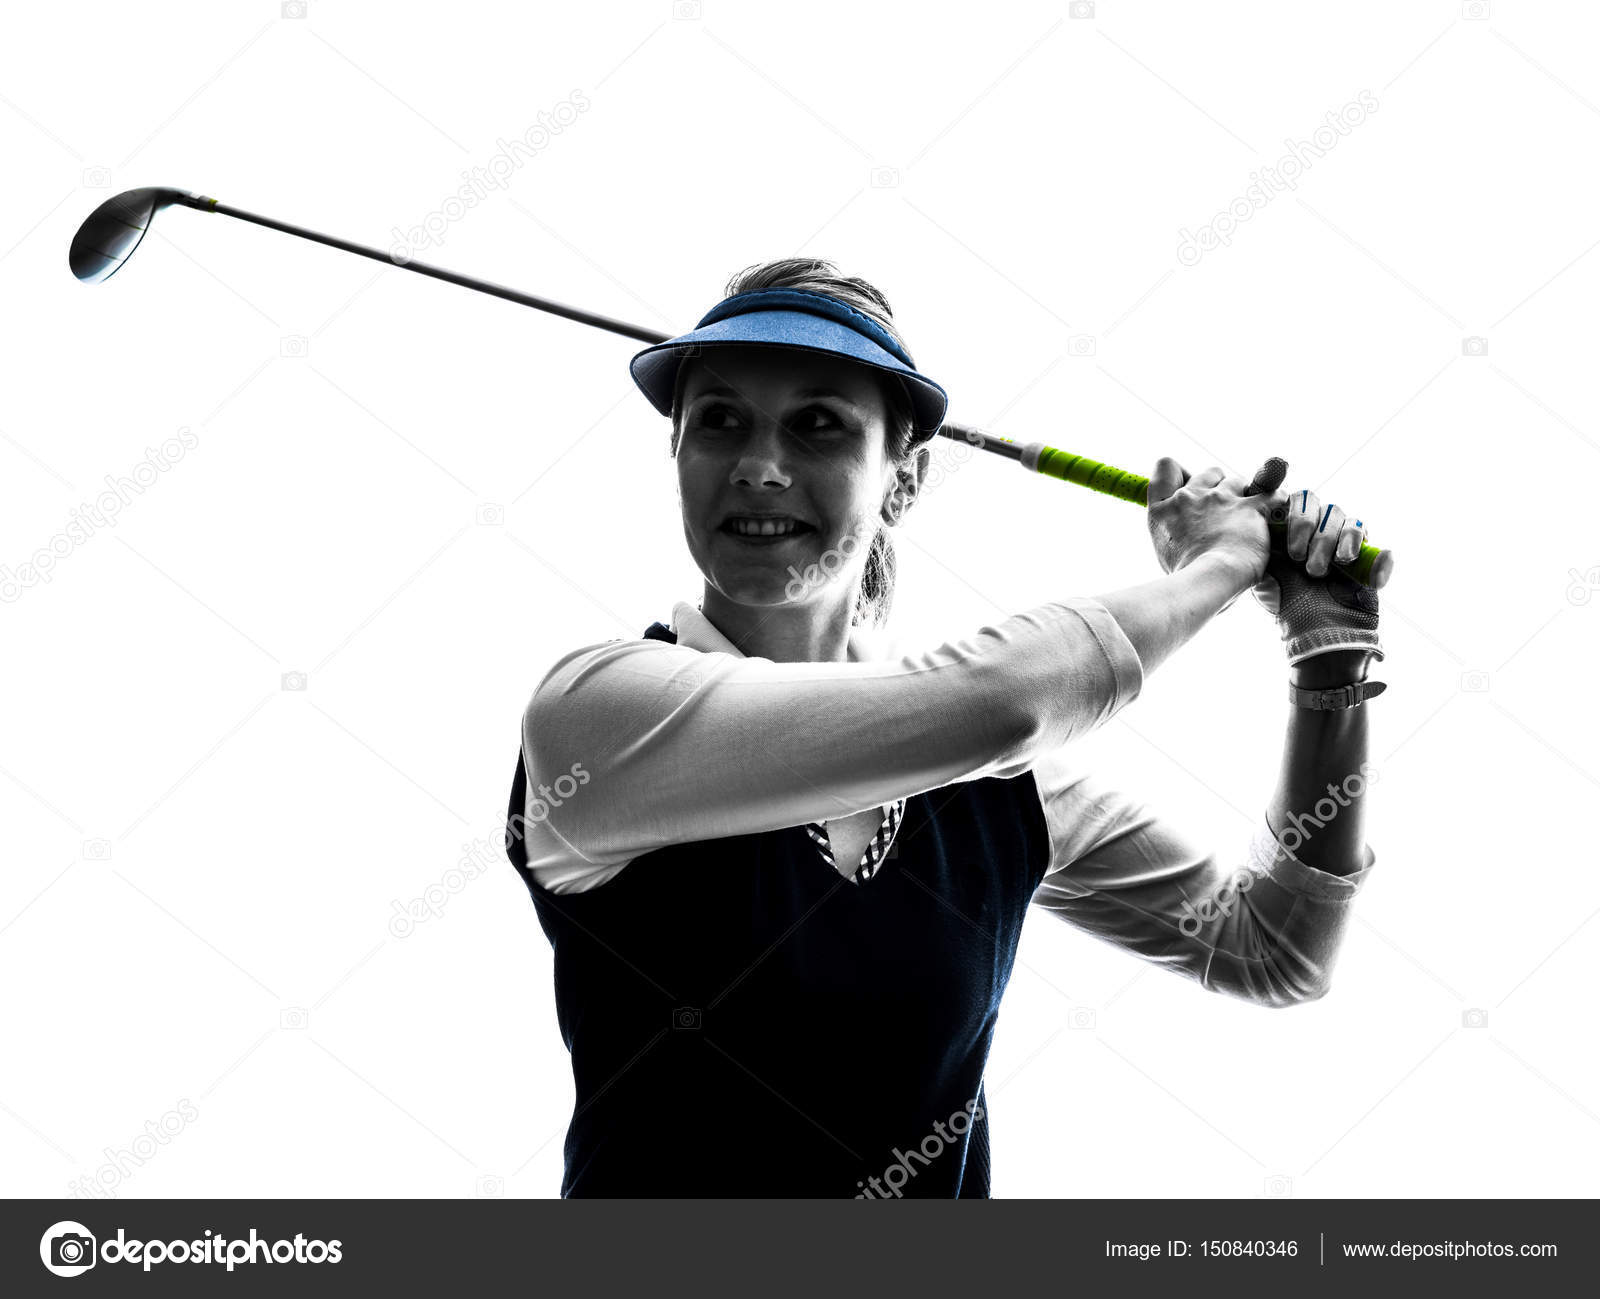 Woman Golfer Golfing Silhouette Stock Photo C Stylepics 150840346